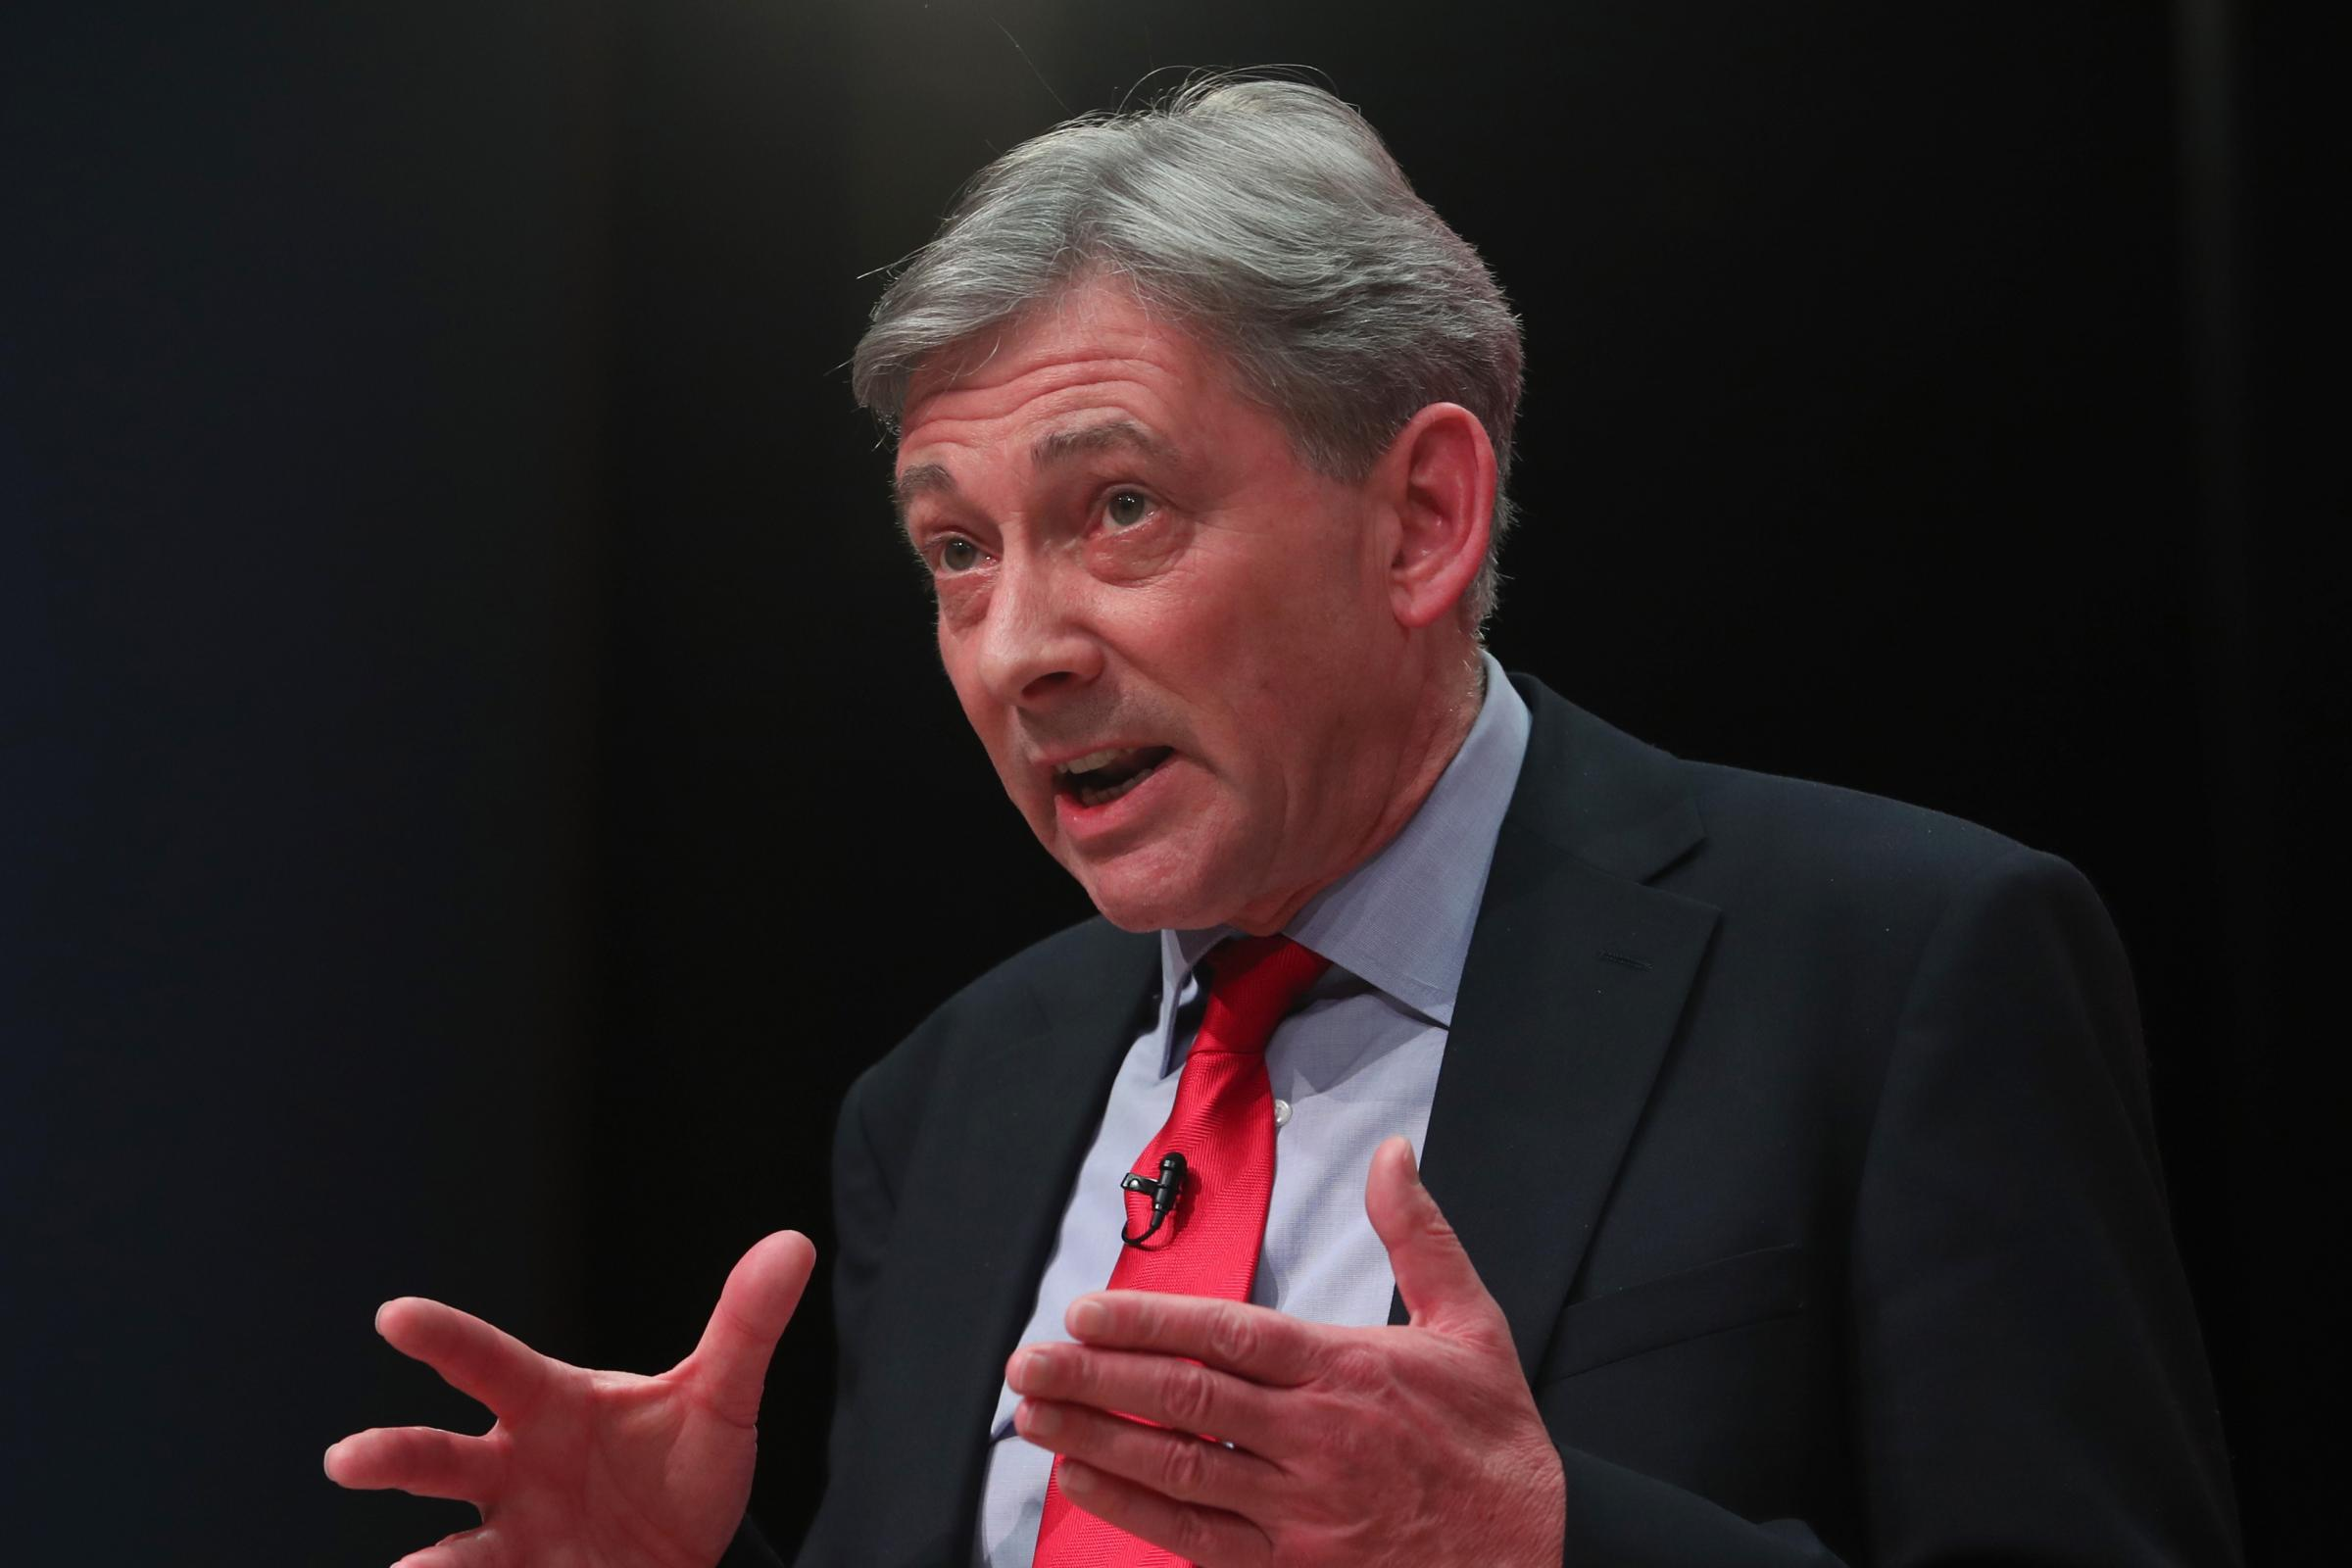 Scottish Labour leader Richard Leonard tried to score political points